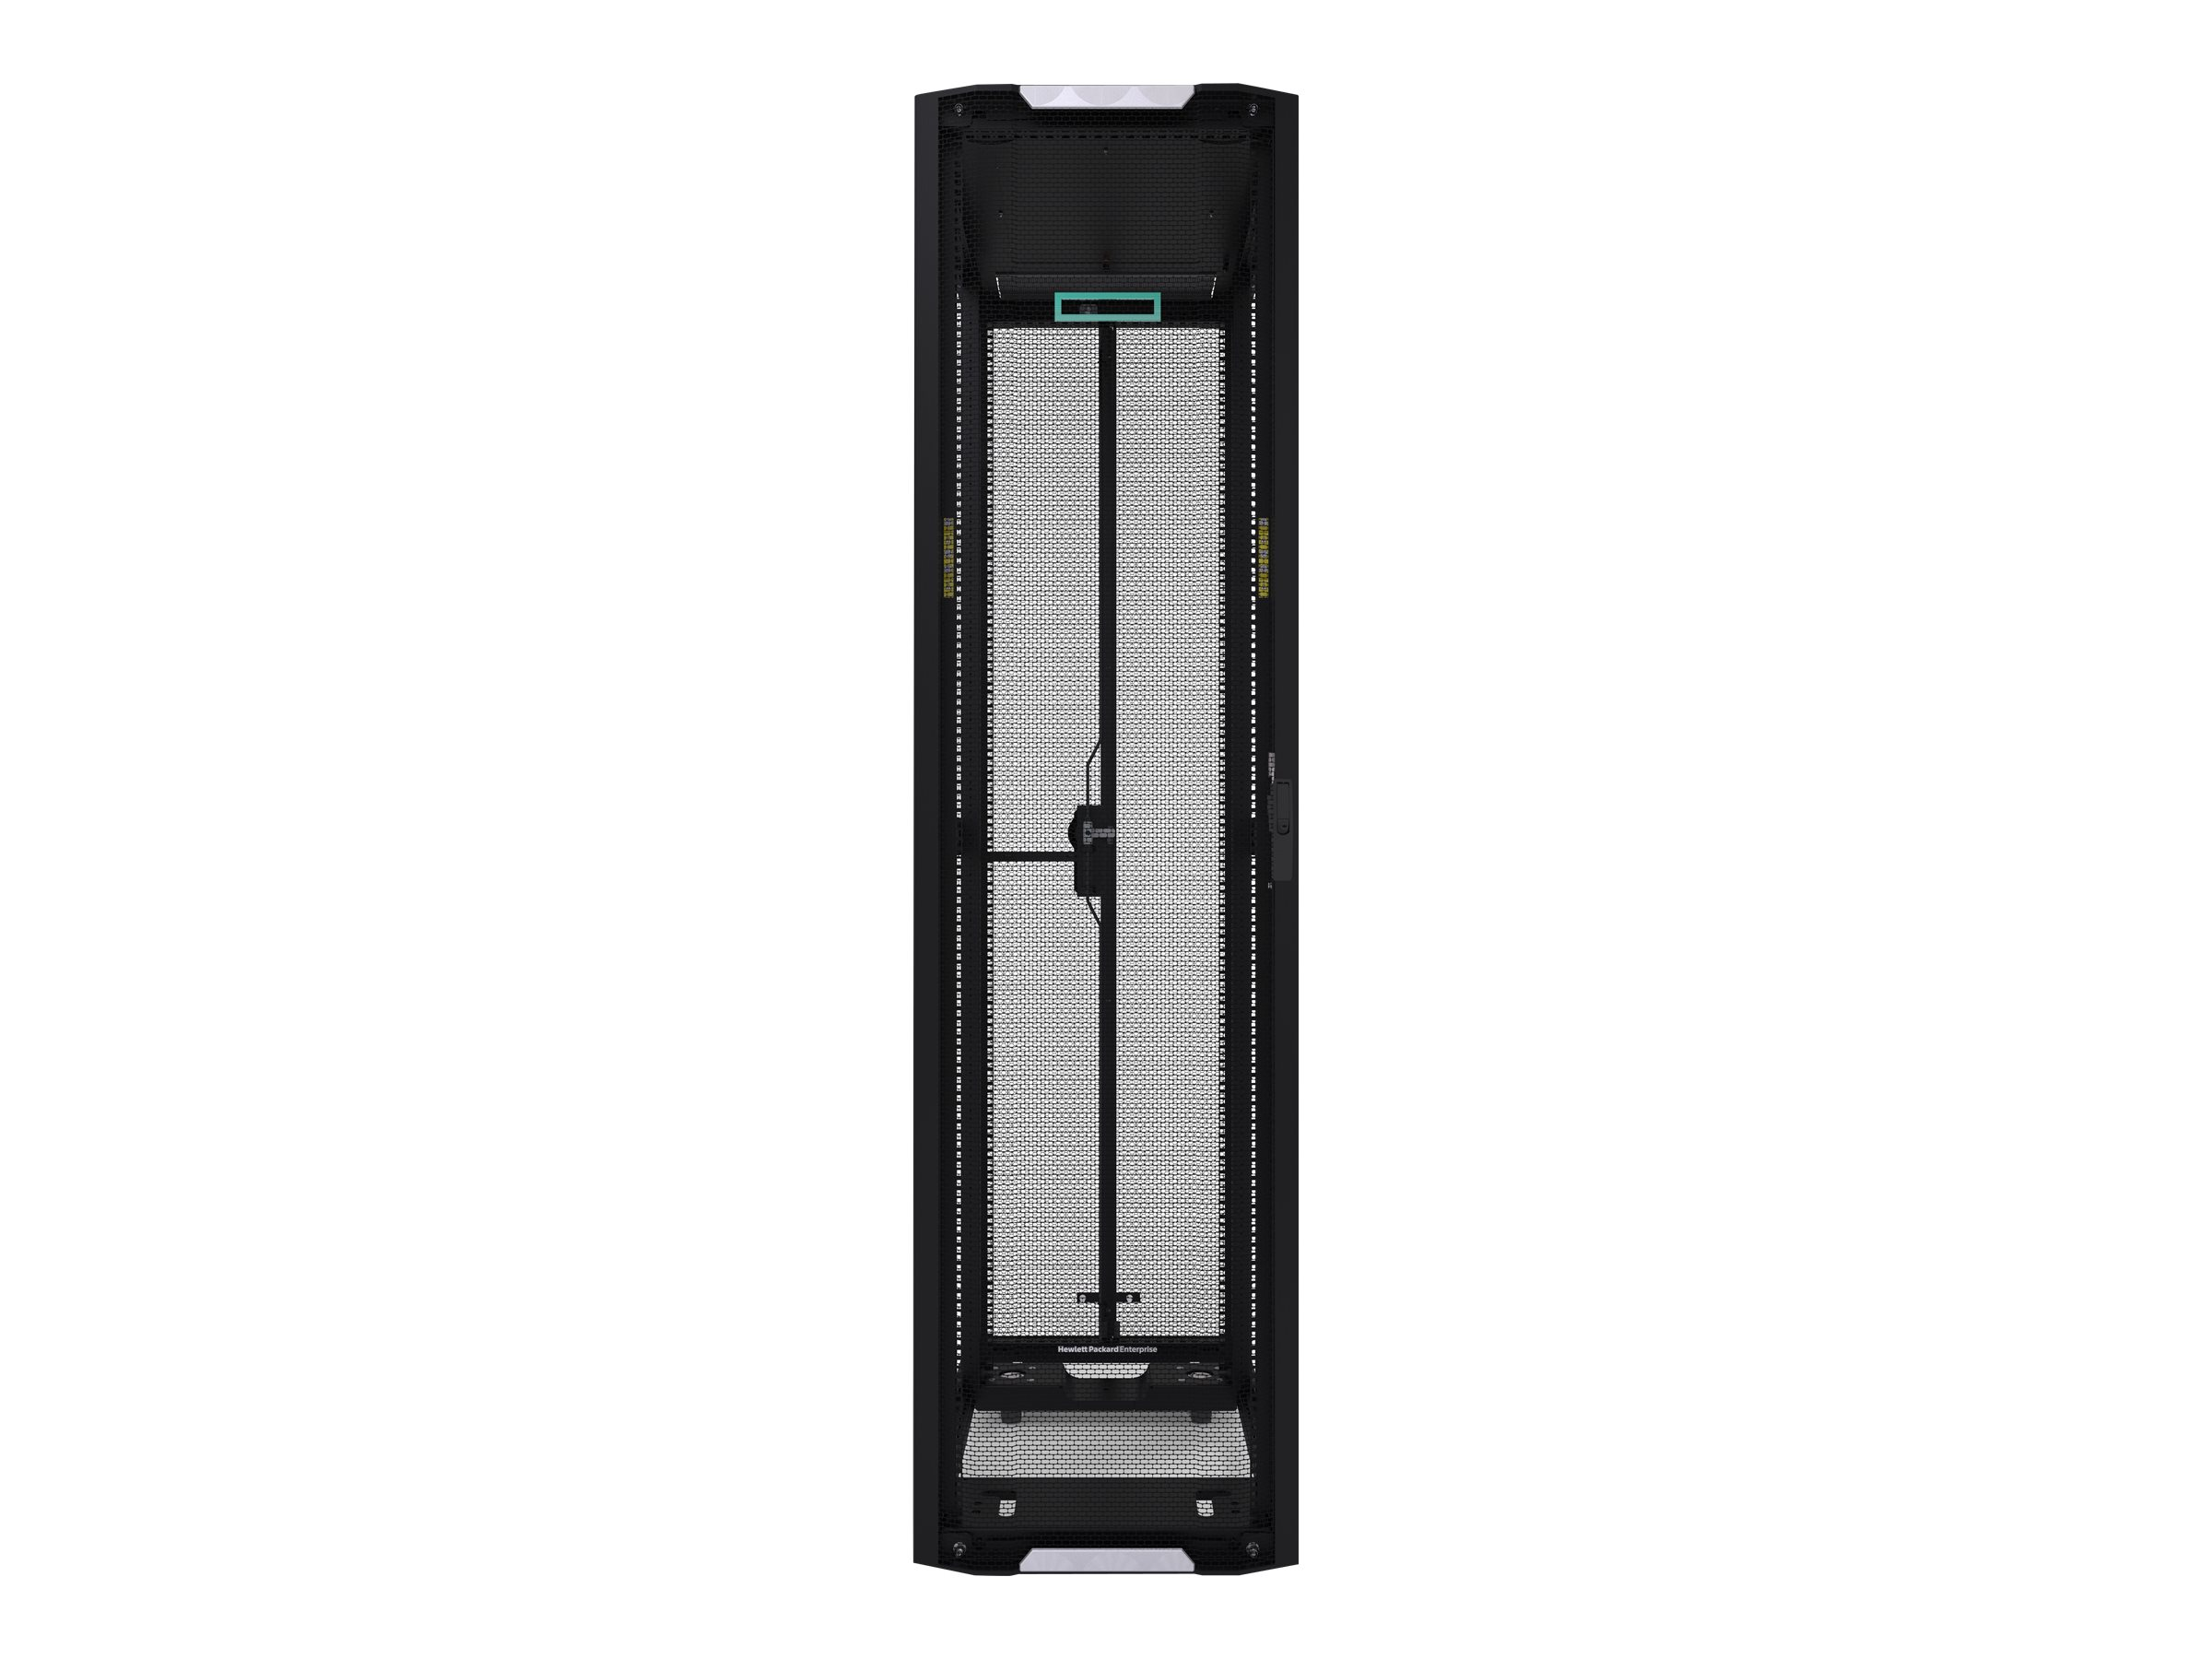 HPE 600mm x 1075mm G2 Enterprise Shock Rack - rack - 48U